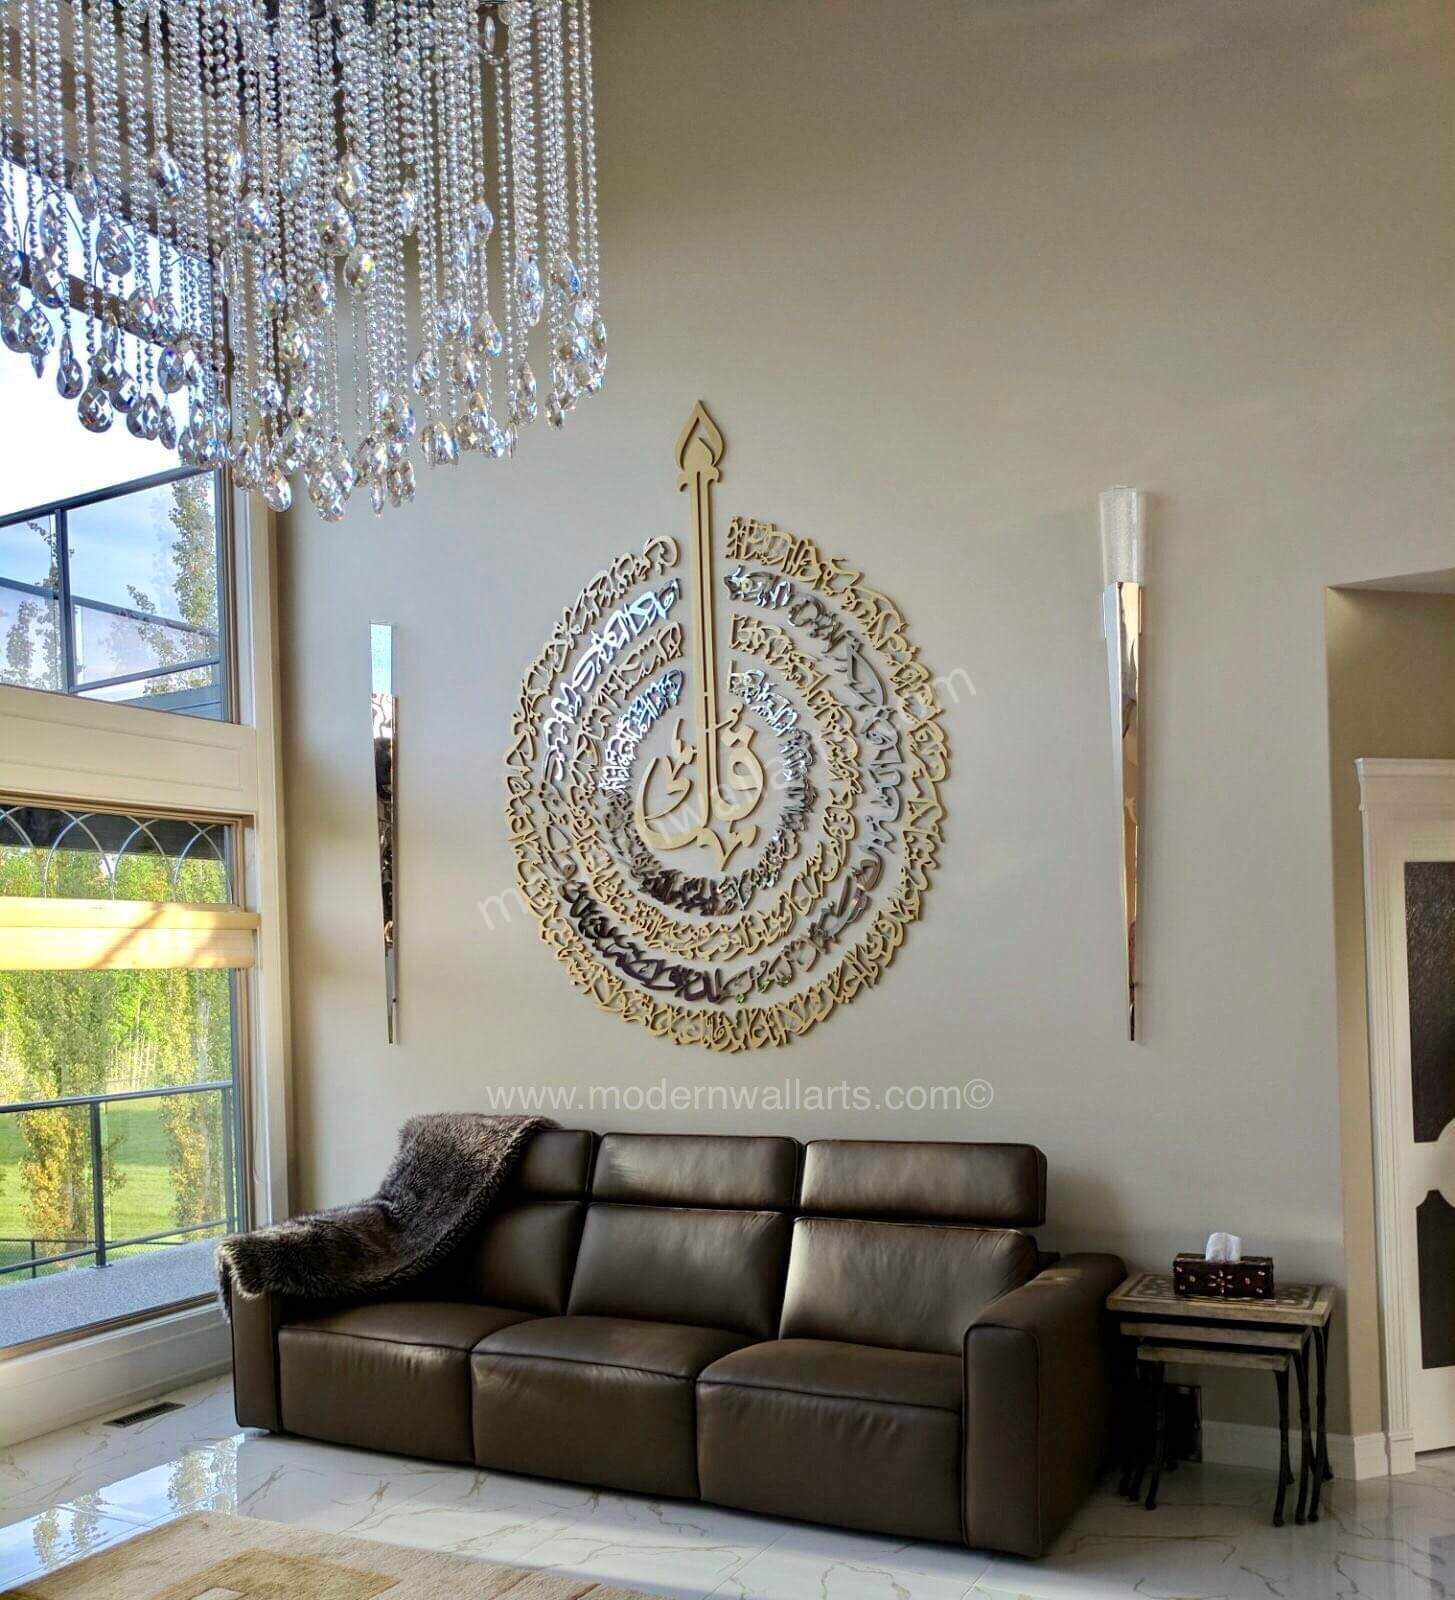 Best ideas about Wall Art Decor . Save or Pin large 4 qul art modern contemporary islamic callligraphy Now.